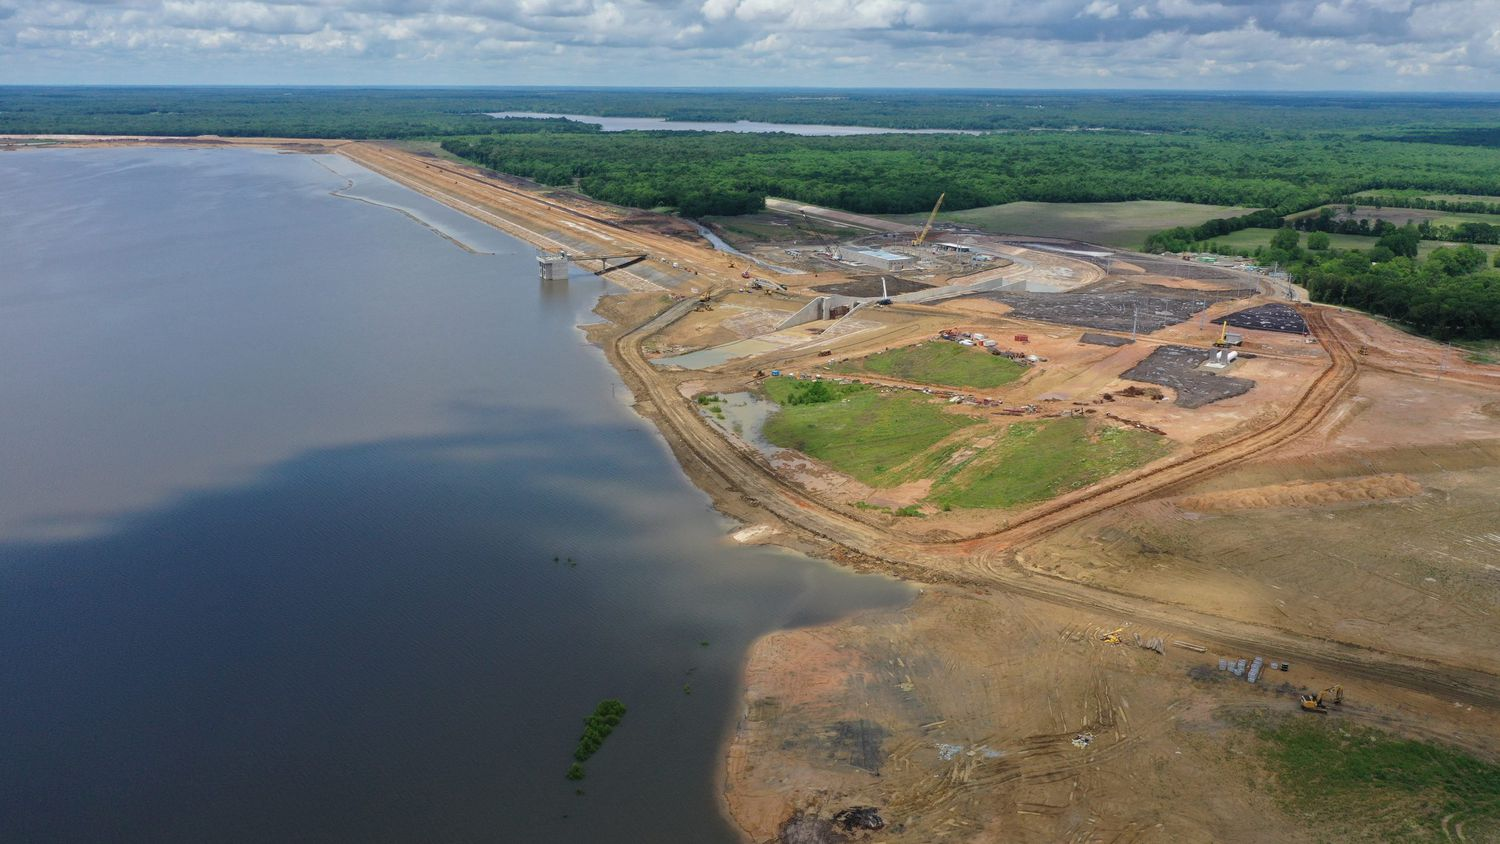 Bois d'Arc Lake is filling quickly and as expected, the North Texas Municipal Water District said. Construction of the lake's dam and surrounding offices are taking place and the lake is planned to begin operating as a reservoir in 2022. (Photo courtesy of the North Texas Municipal Water District)